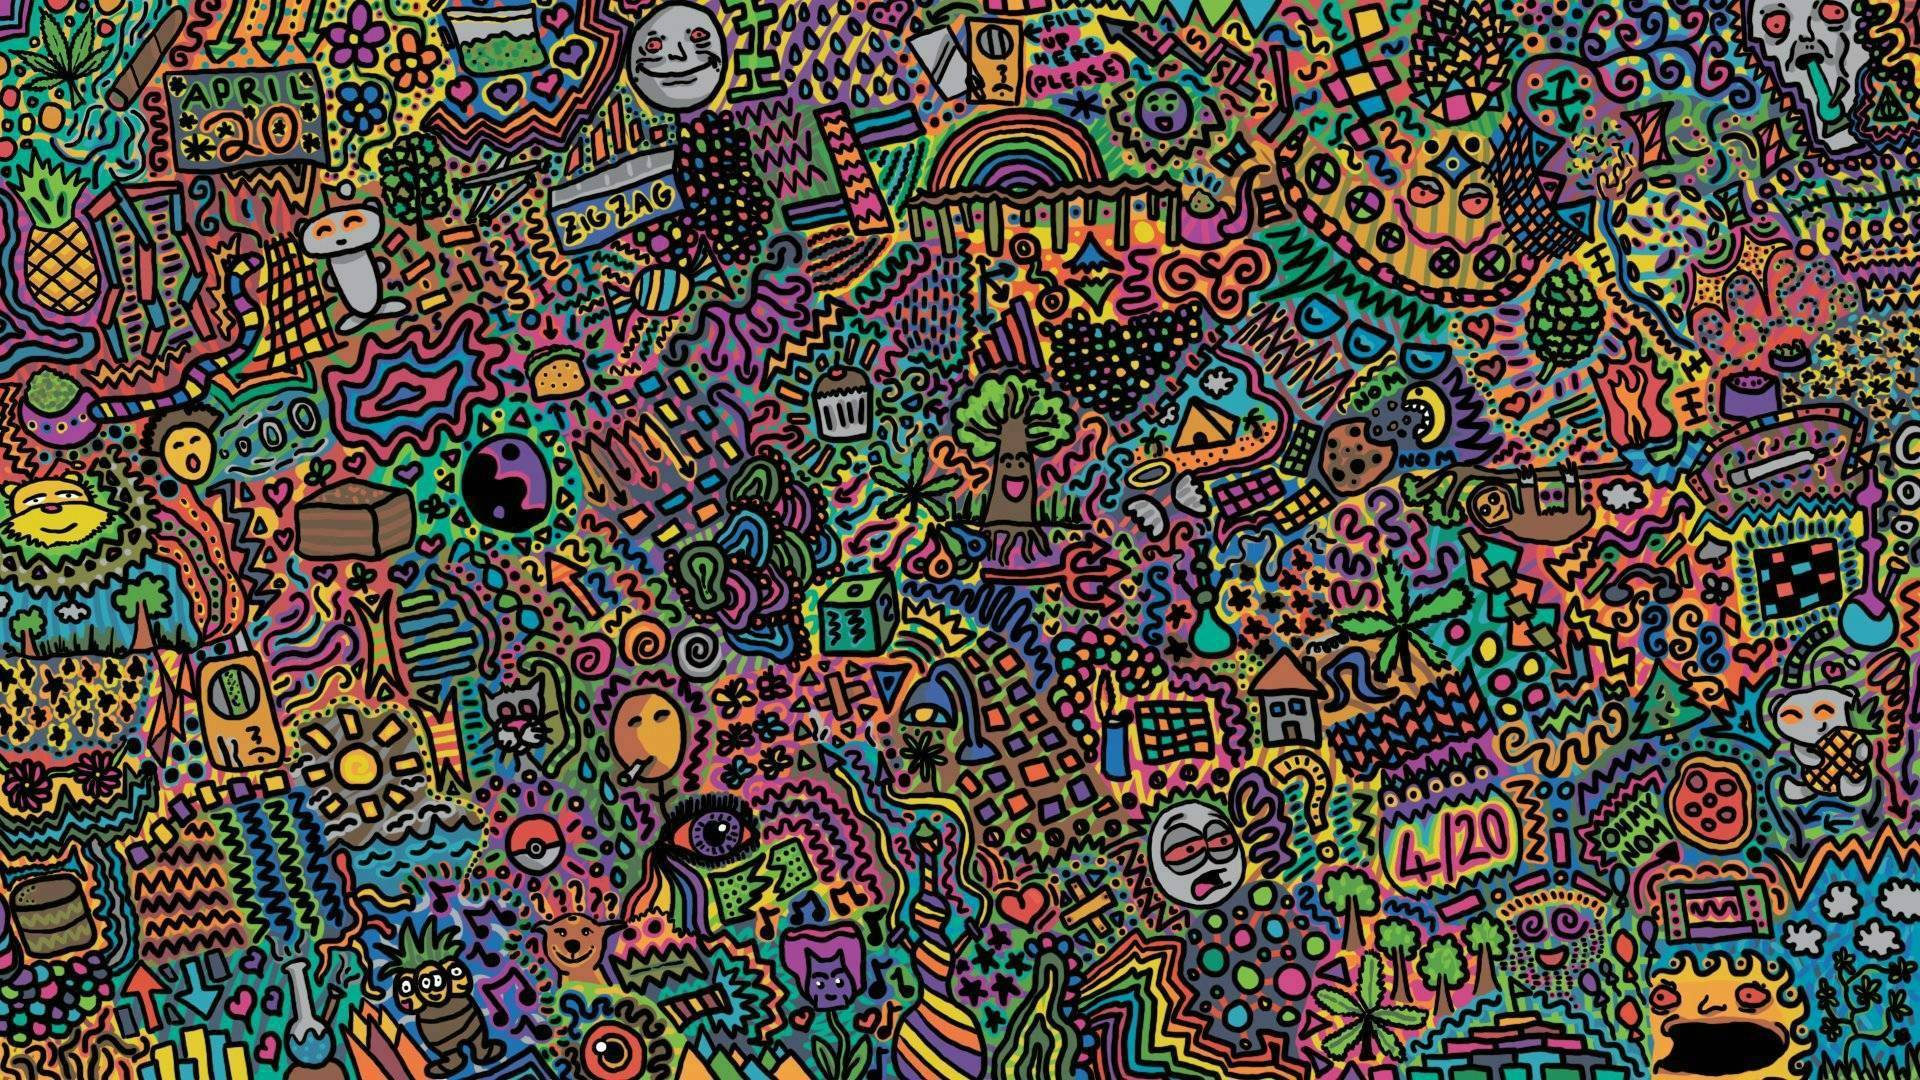 Wacky Wallpaper posted by Christopher Mercado 1920x1080